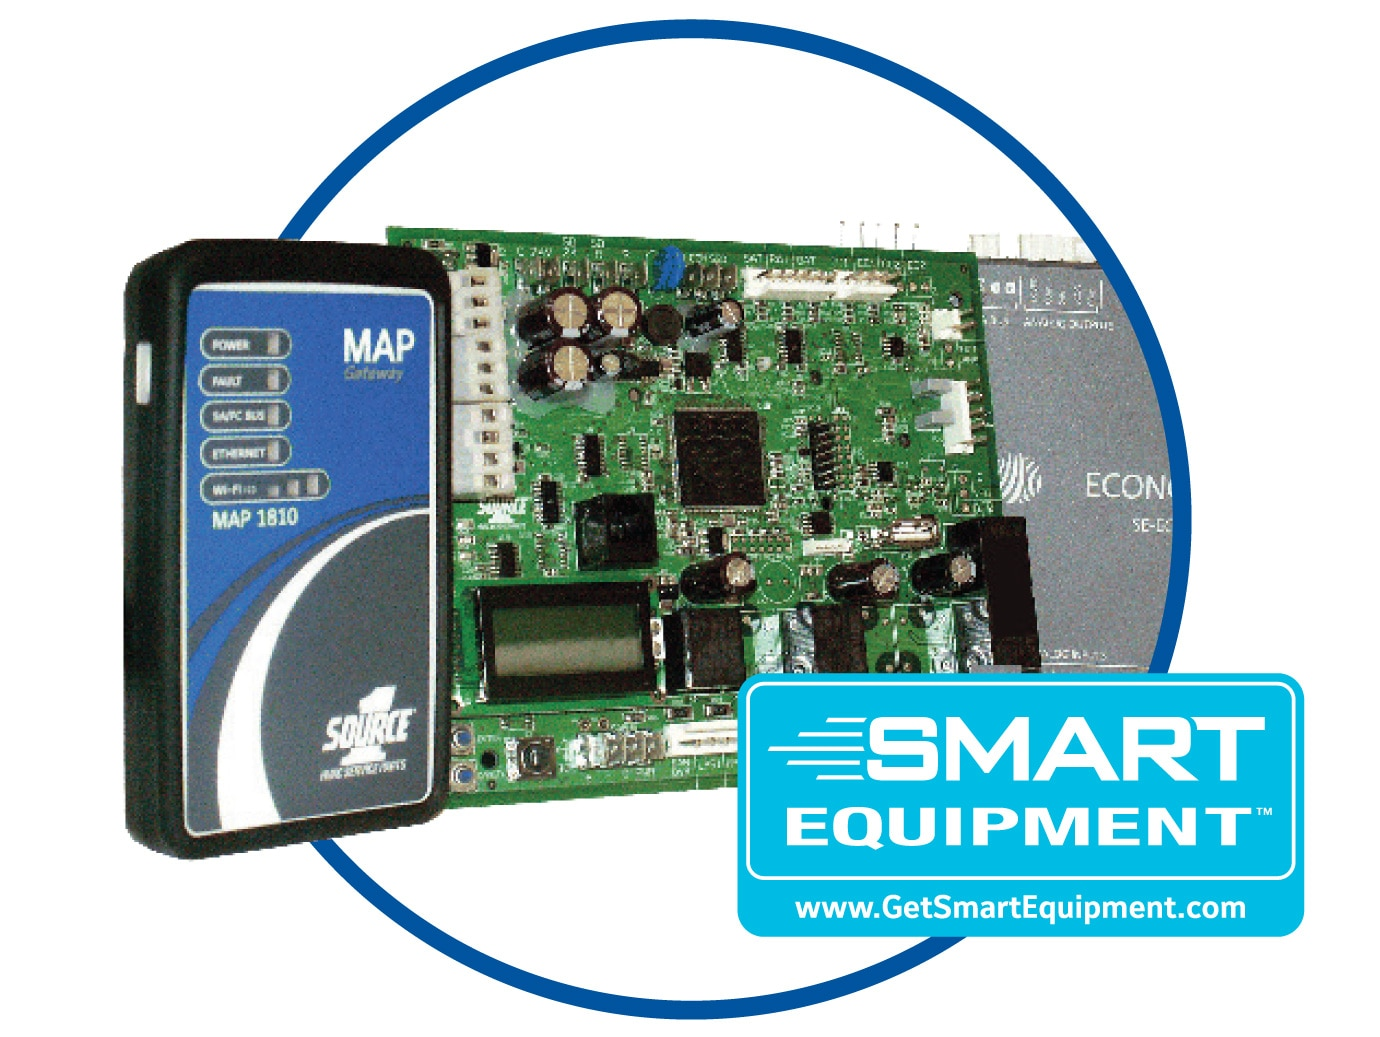 Smart Equipment control board and components for YORK packaged rooftop unit